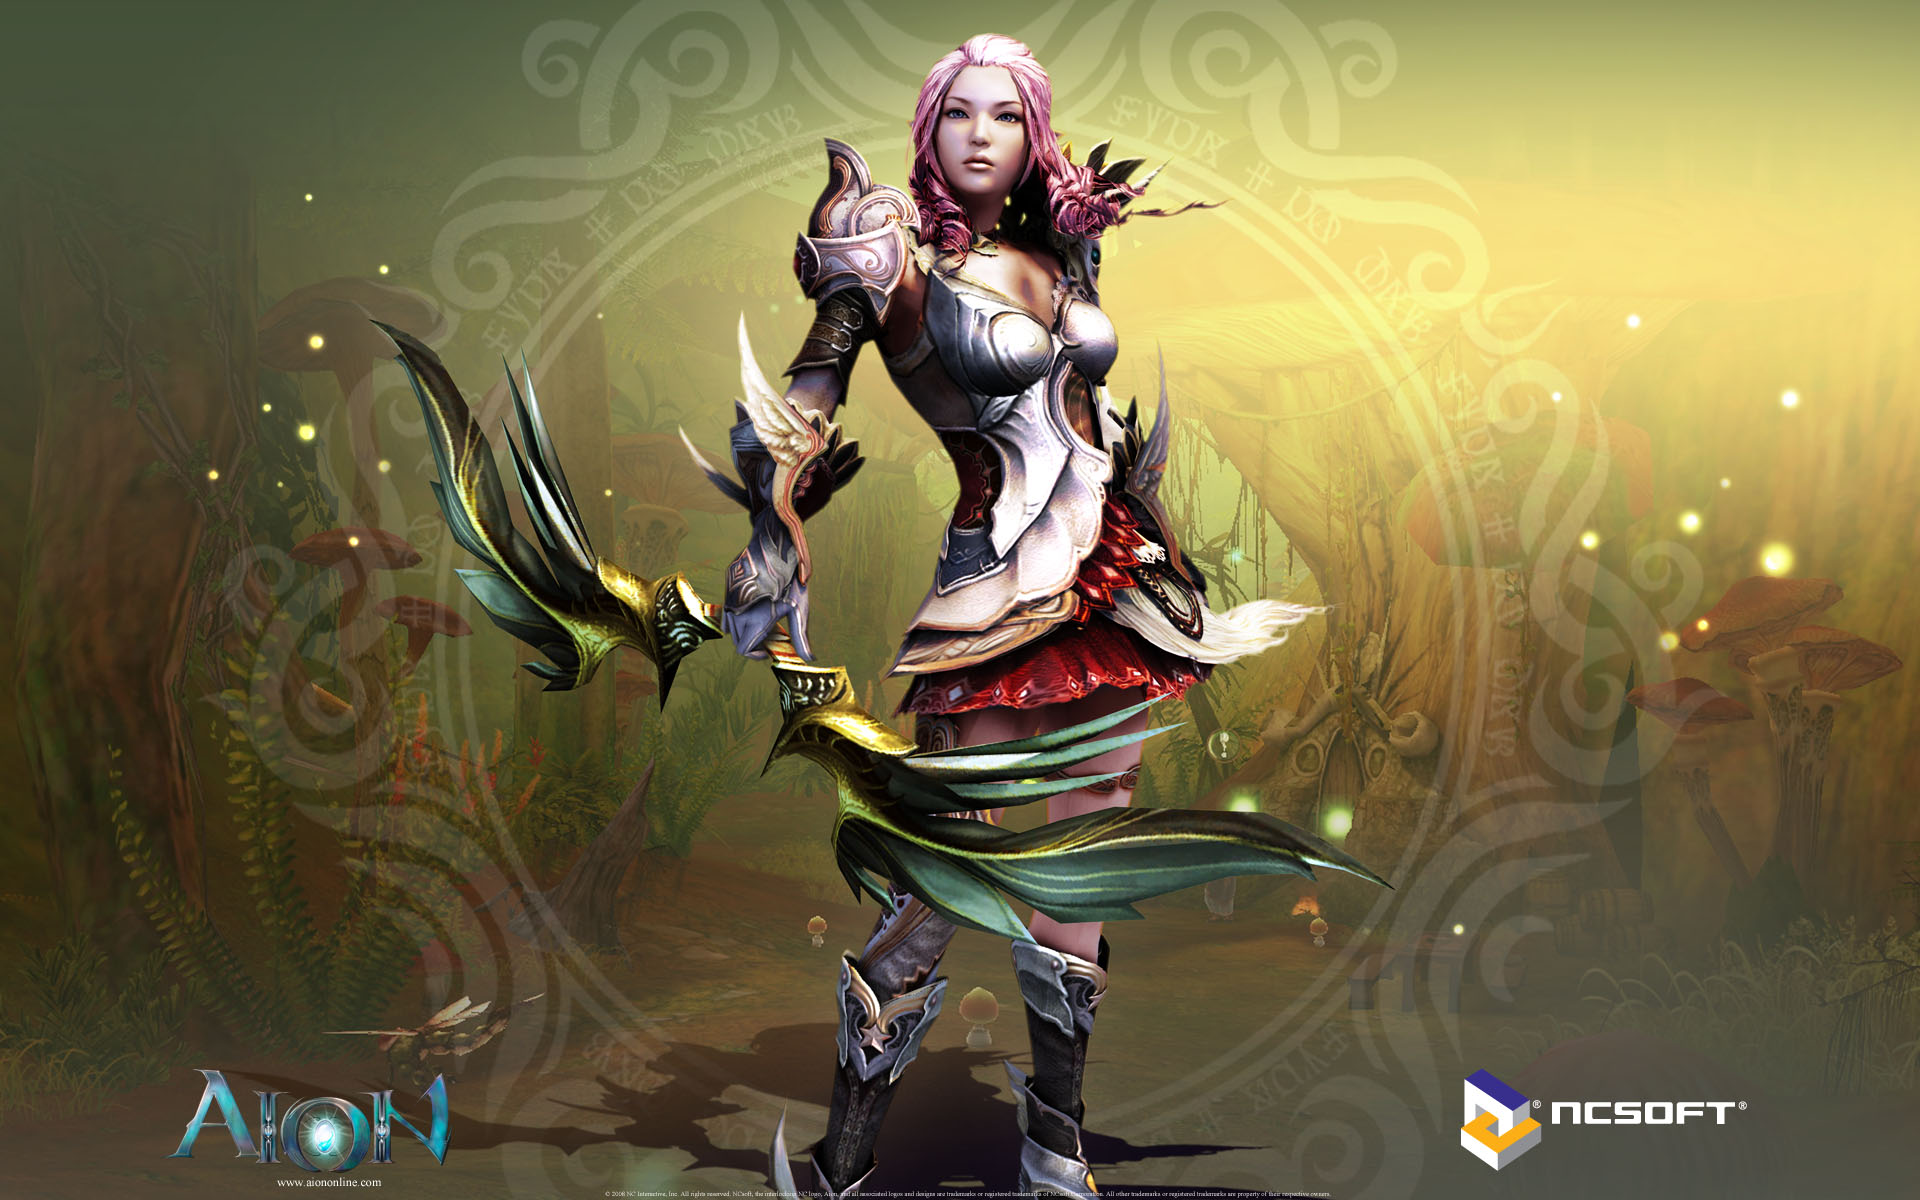 HD Wallpapers Aion